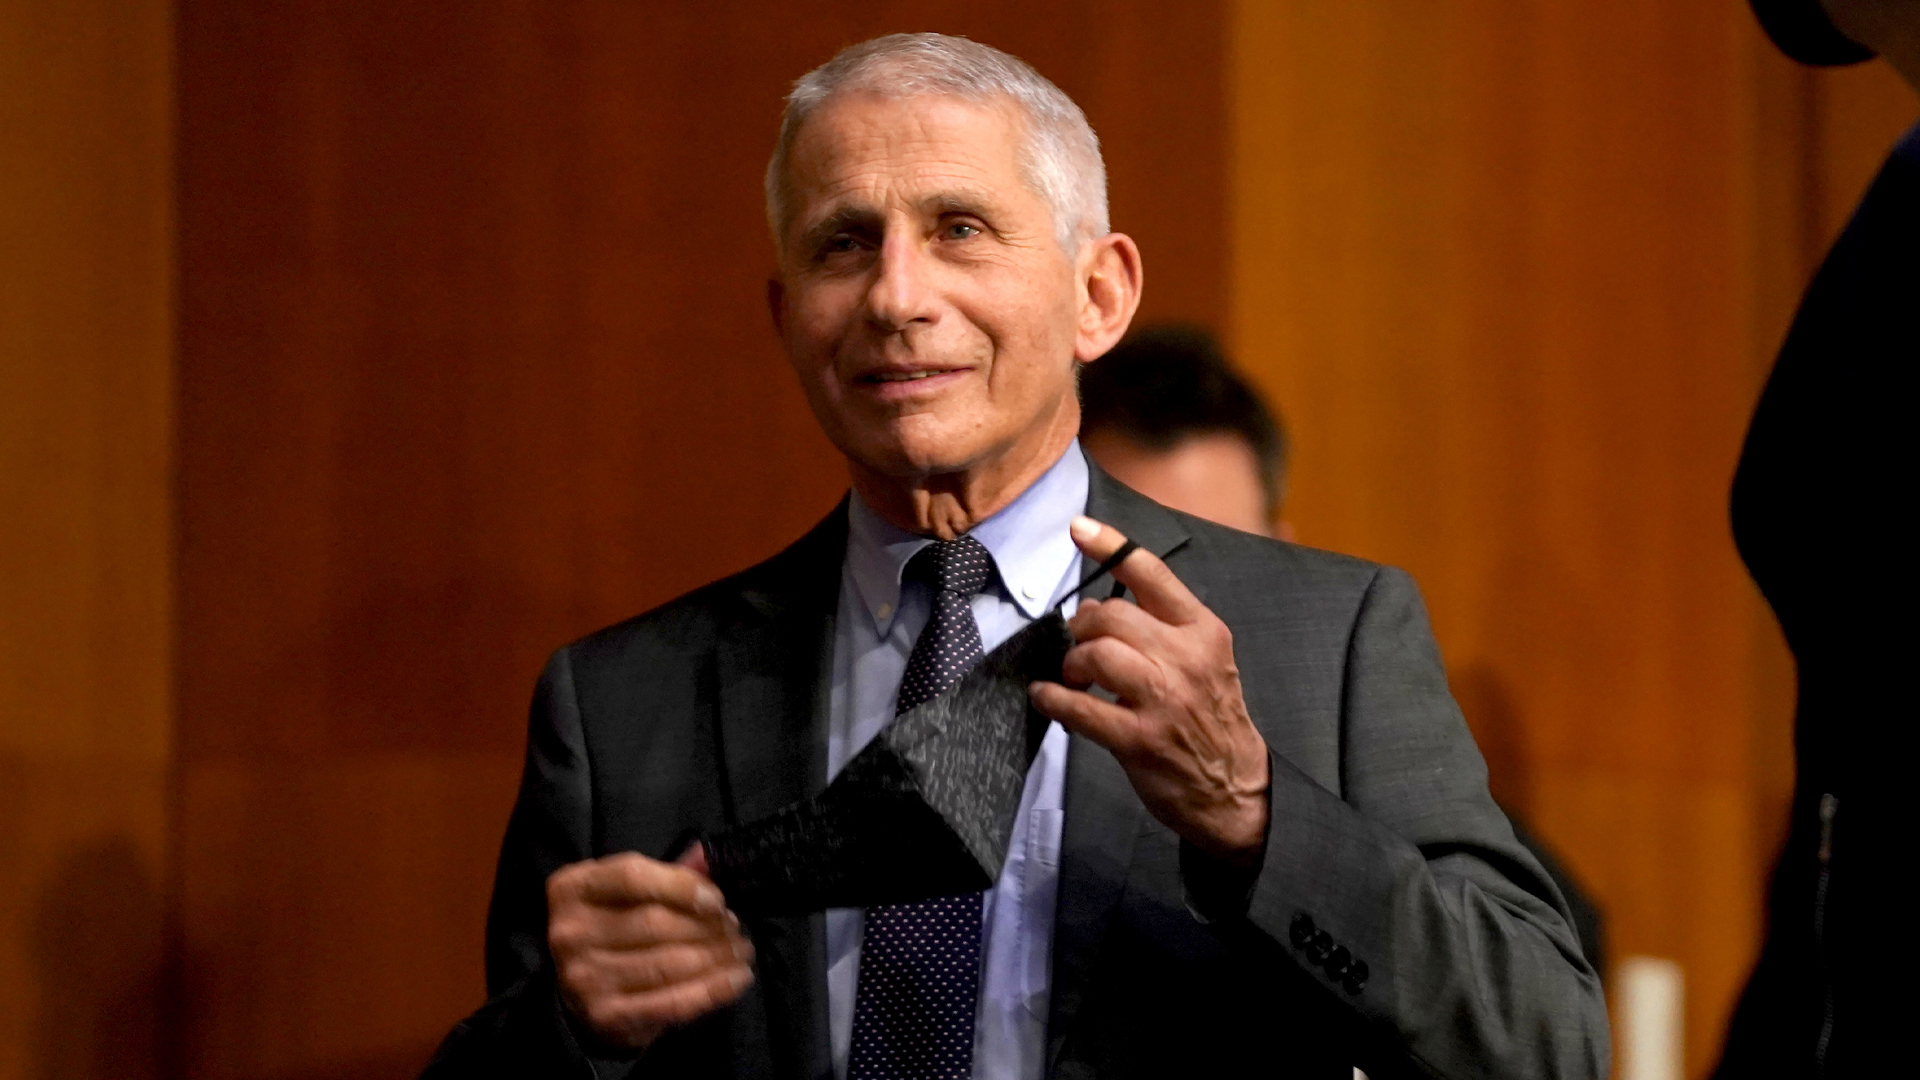 """Fauci was praised for supporting """"natural origin"""" COVID theory, emails show"""